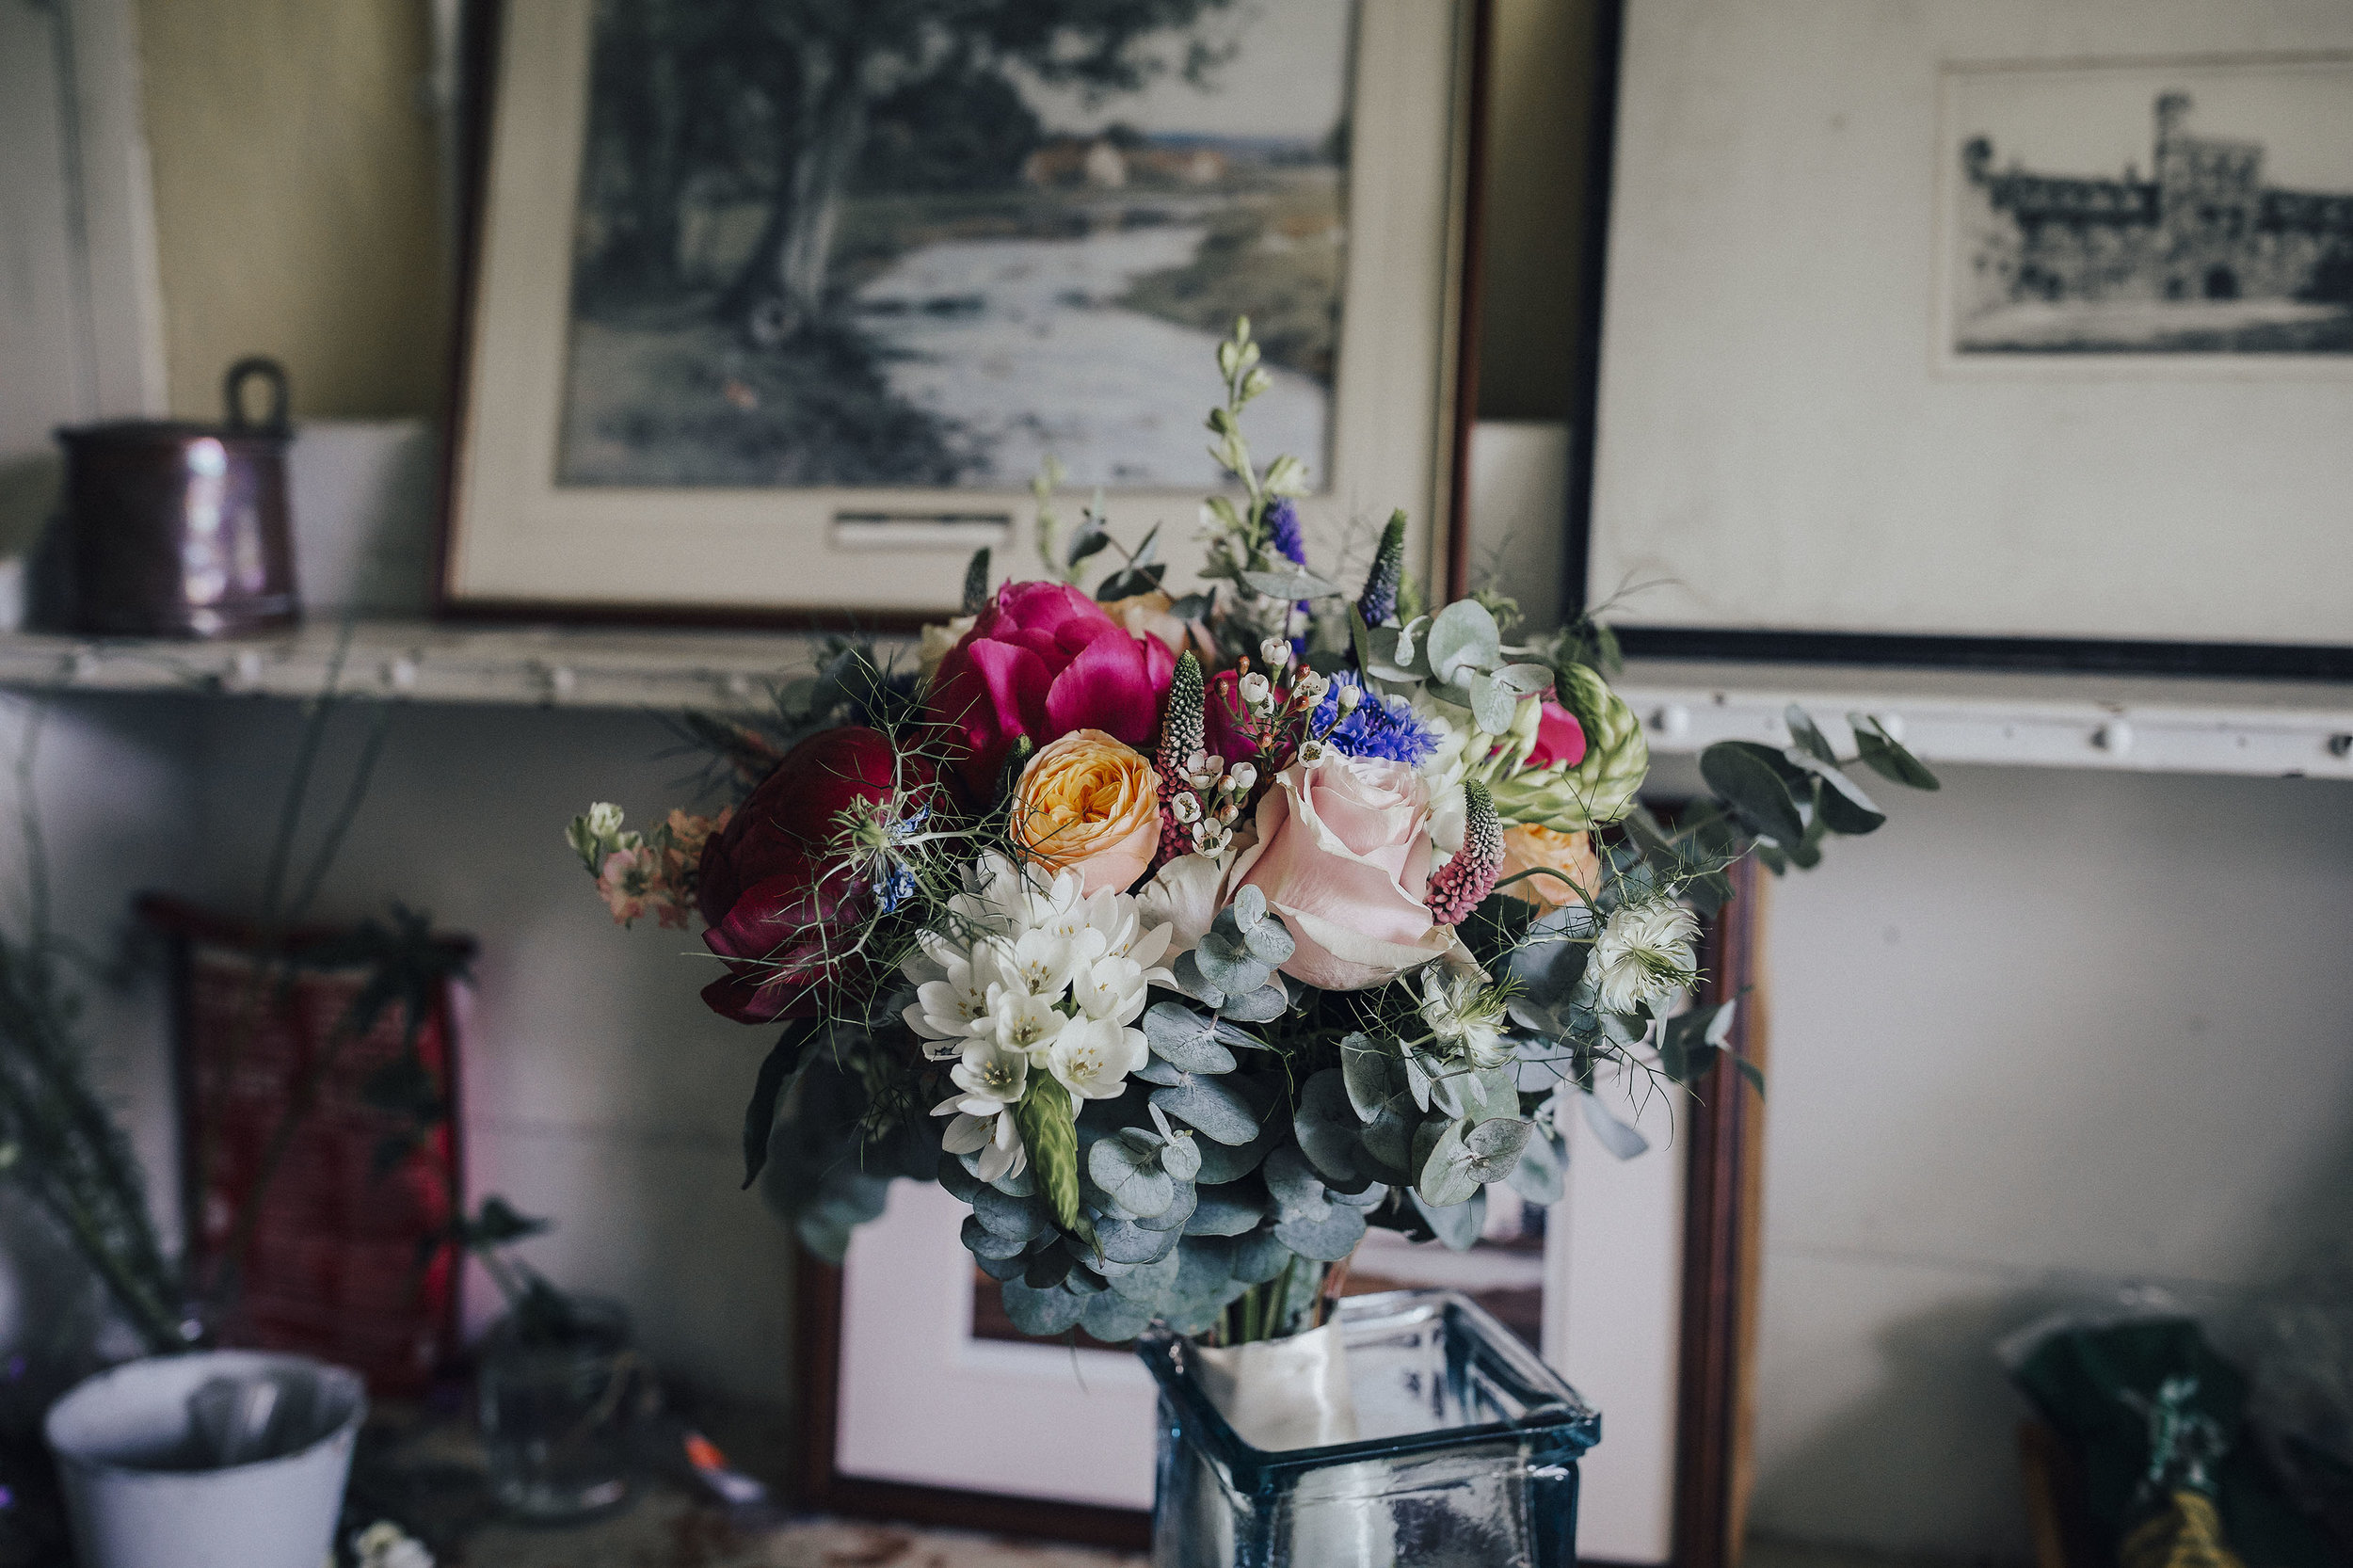 SCOTTISH_ELOPEMENT_PHOTOGRAPHER_PJ_PHILLIPS_PHOTOGRAPHY_24.jpg